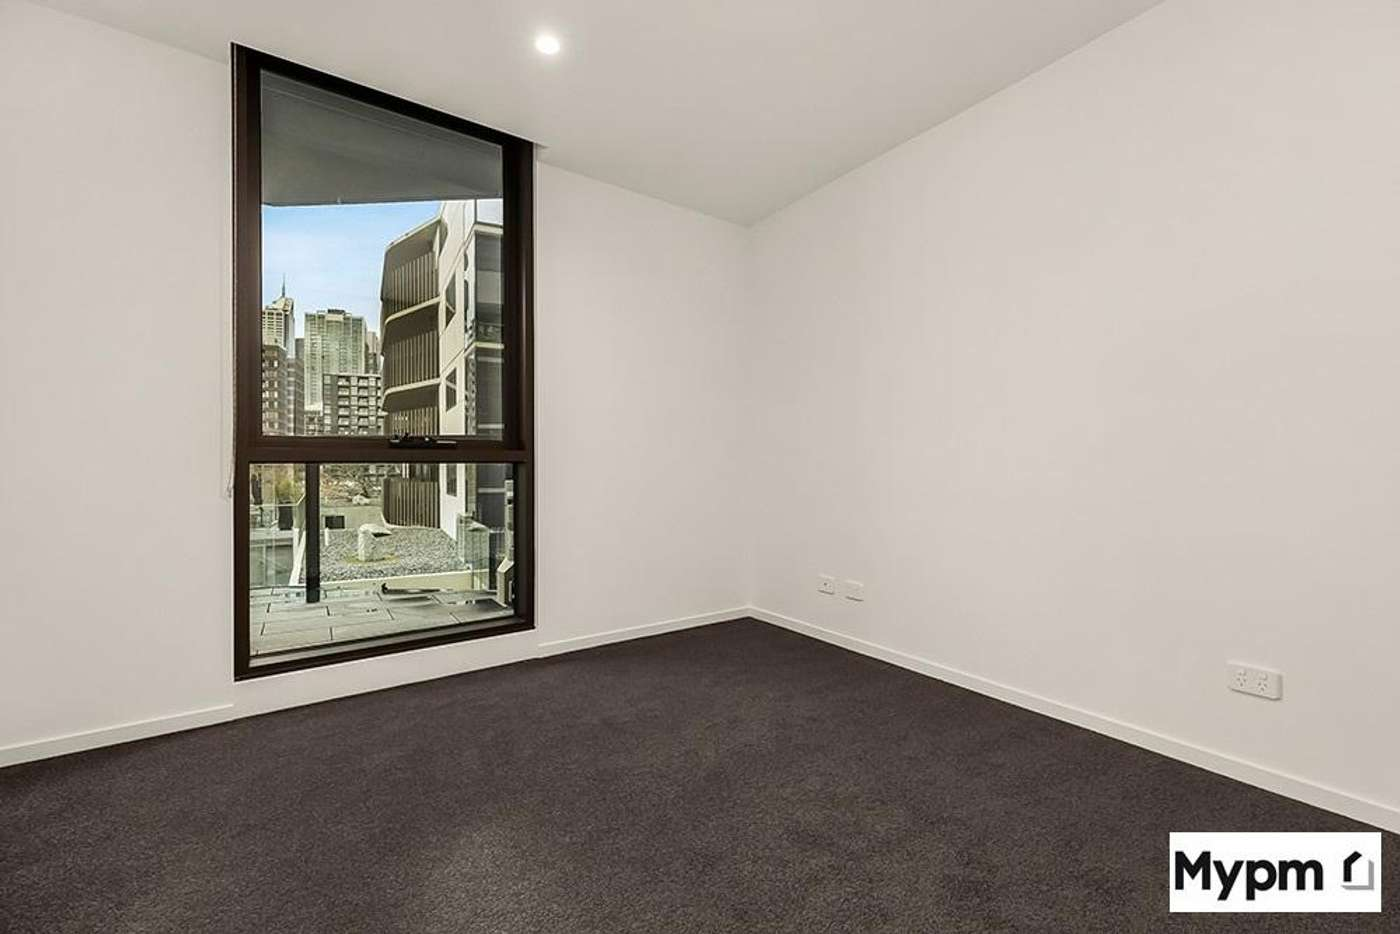 Fifth view of Homely apartment listing, 509/121 Rosslyn Street, West Melbourne VIC 3003